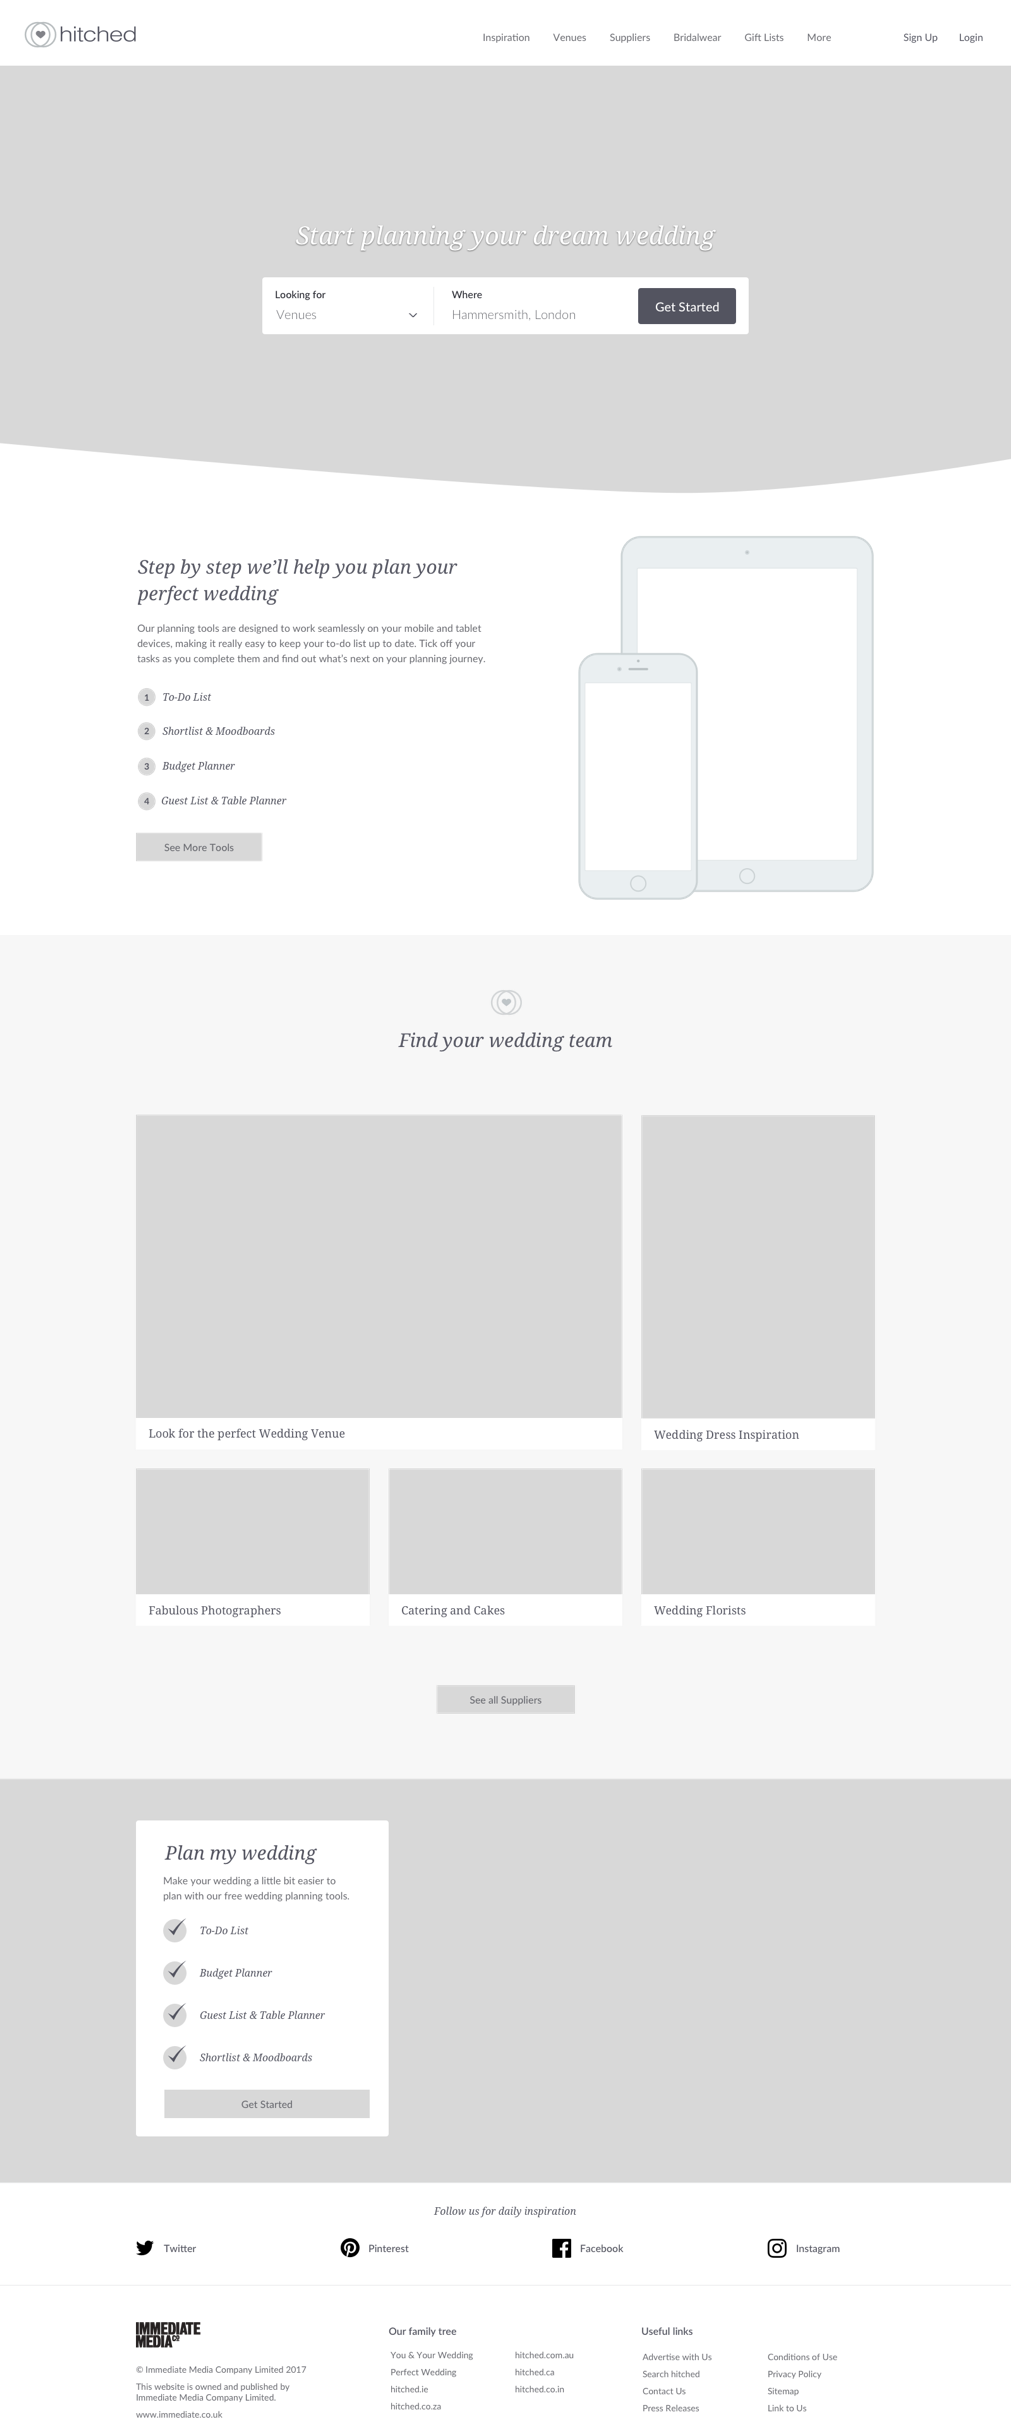 The finished hitched wireframe after ux interviews